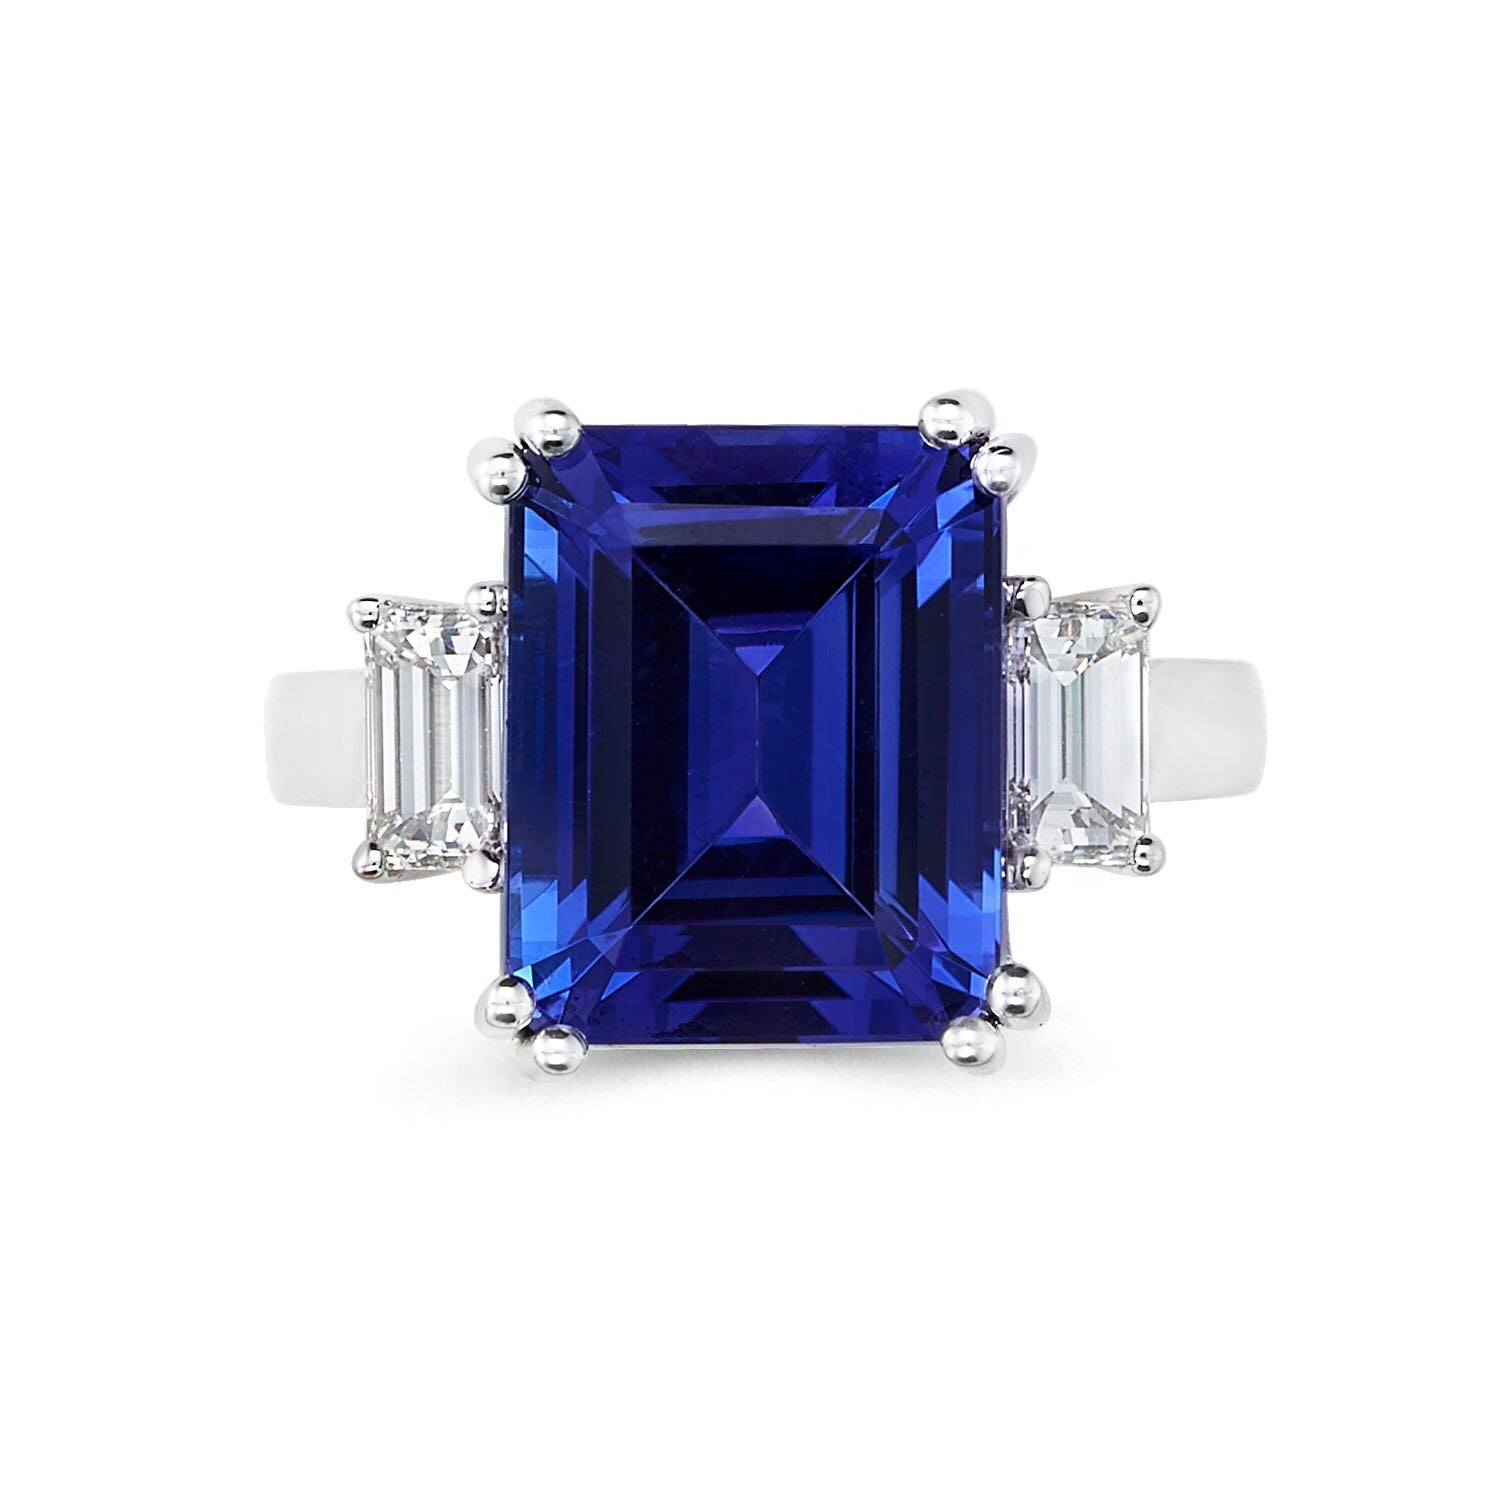 watches anika jewelry cut diamond free shipping ring silver sterling tanzanite august accent today and product overstock trillion